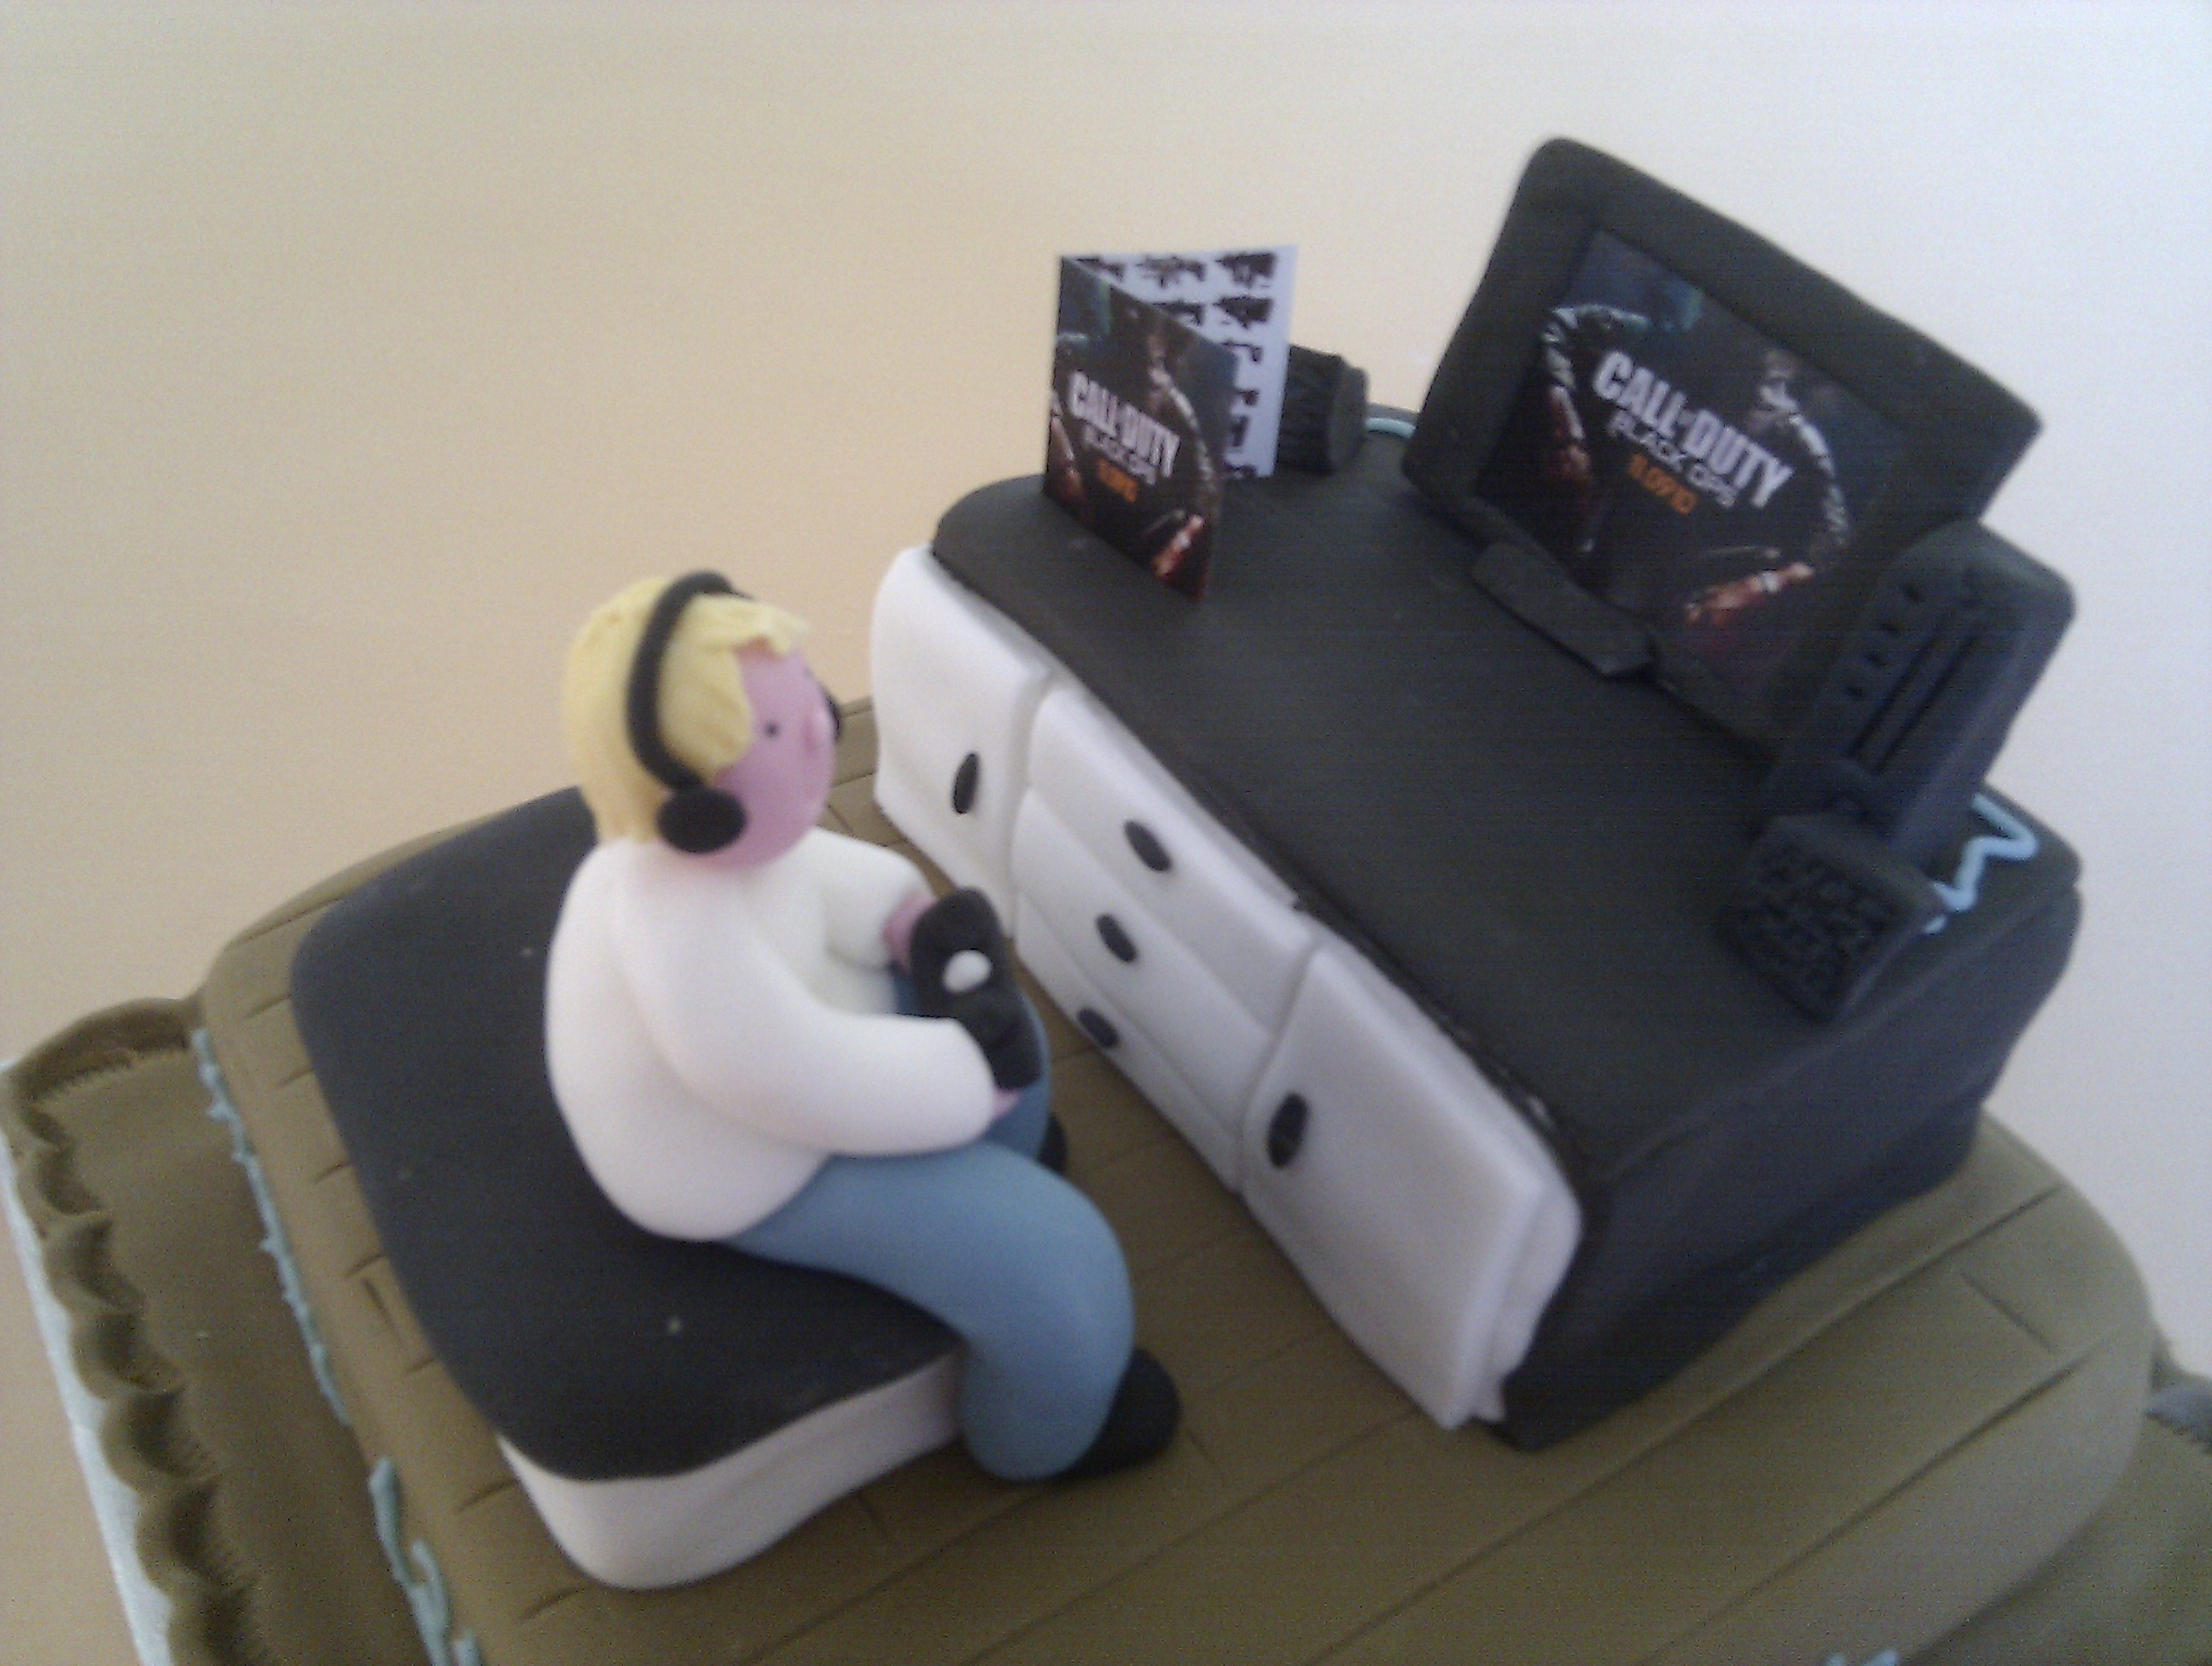 Call Of Duty Cake 3dcakes